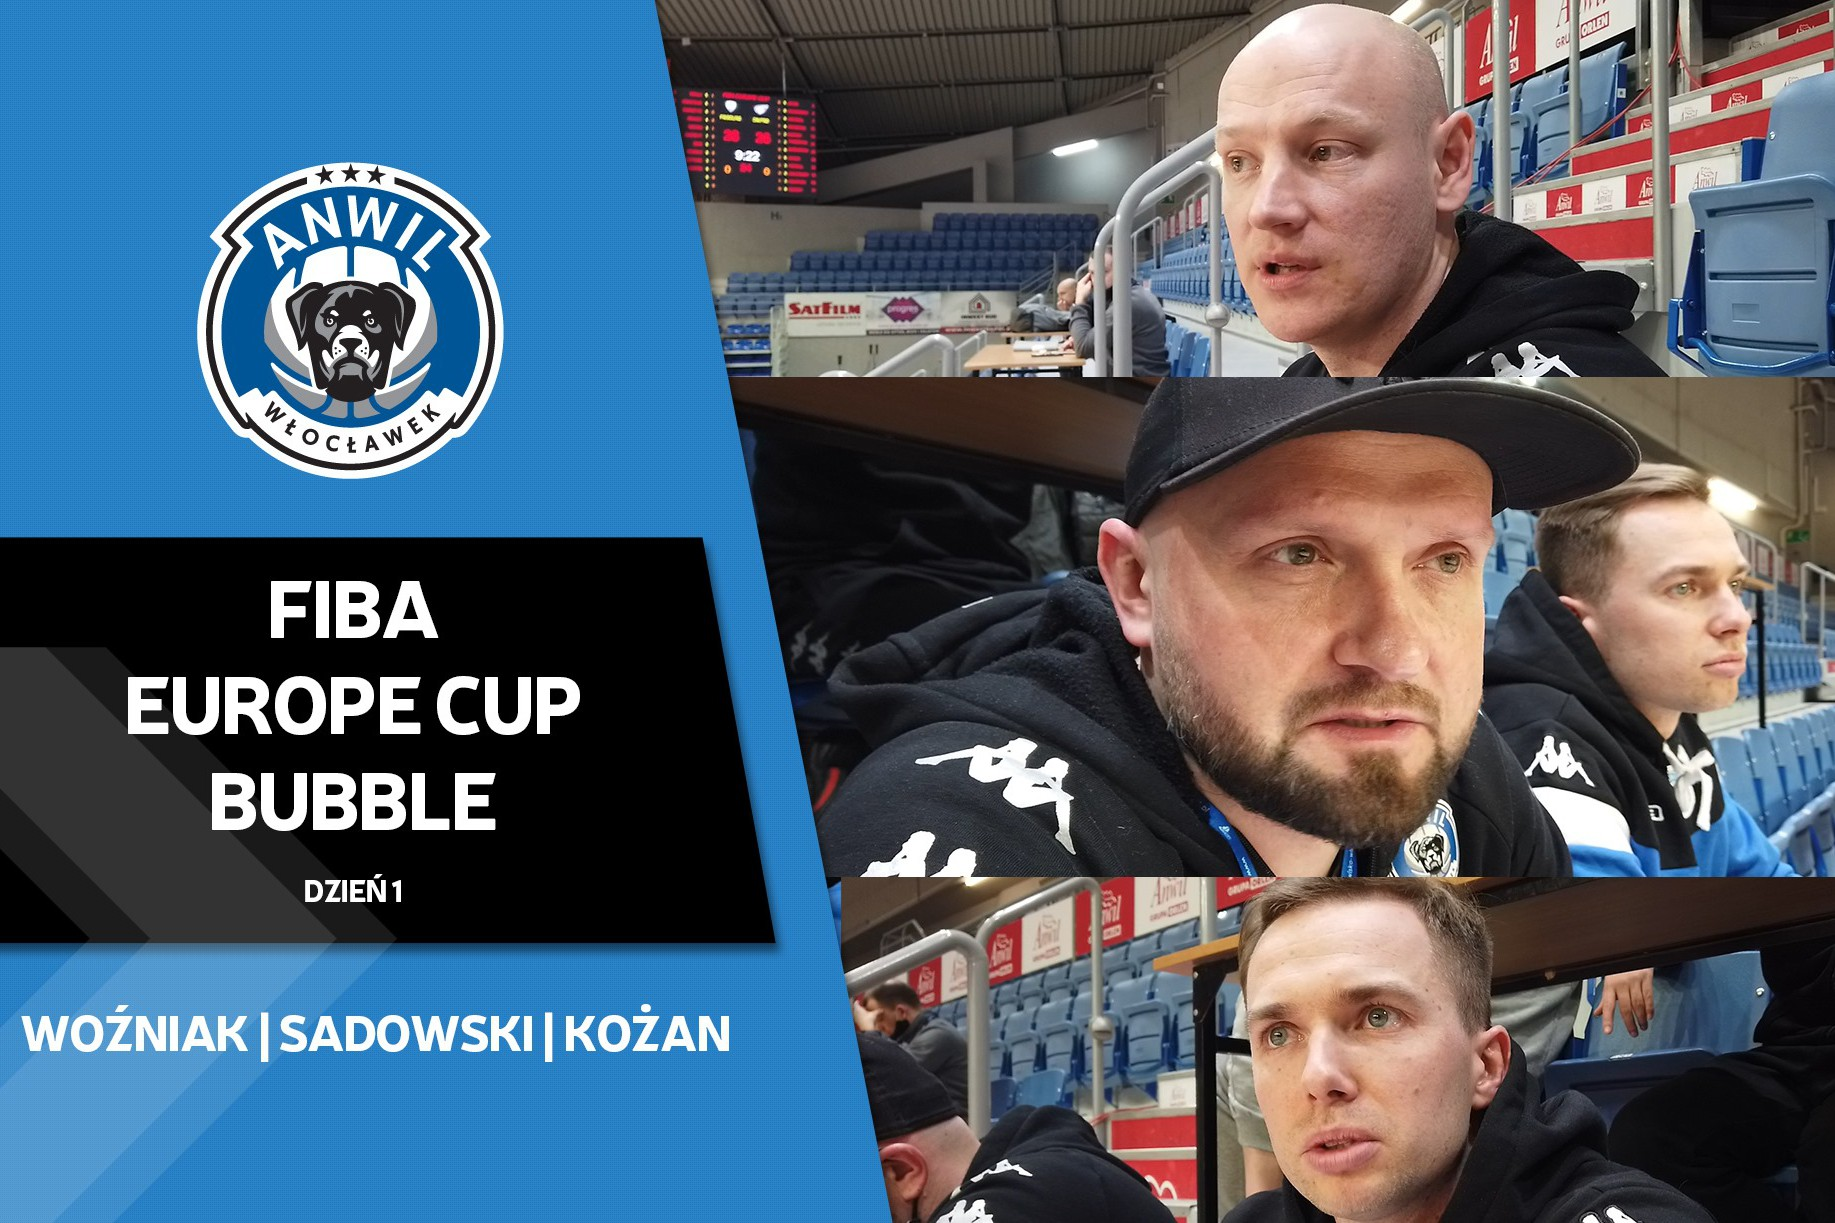 Wideo | FIBA Europe Cup Bubble | Dzień 1 | Scouting Dnipro